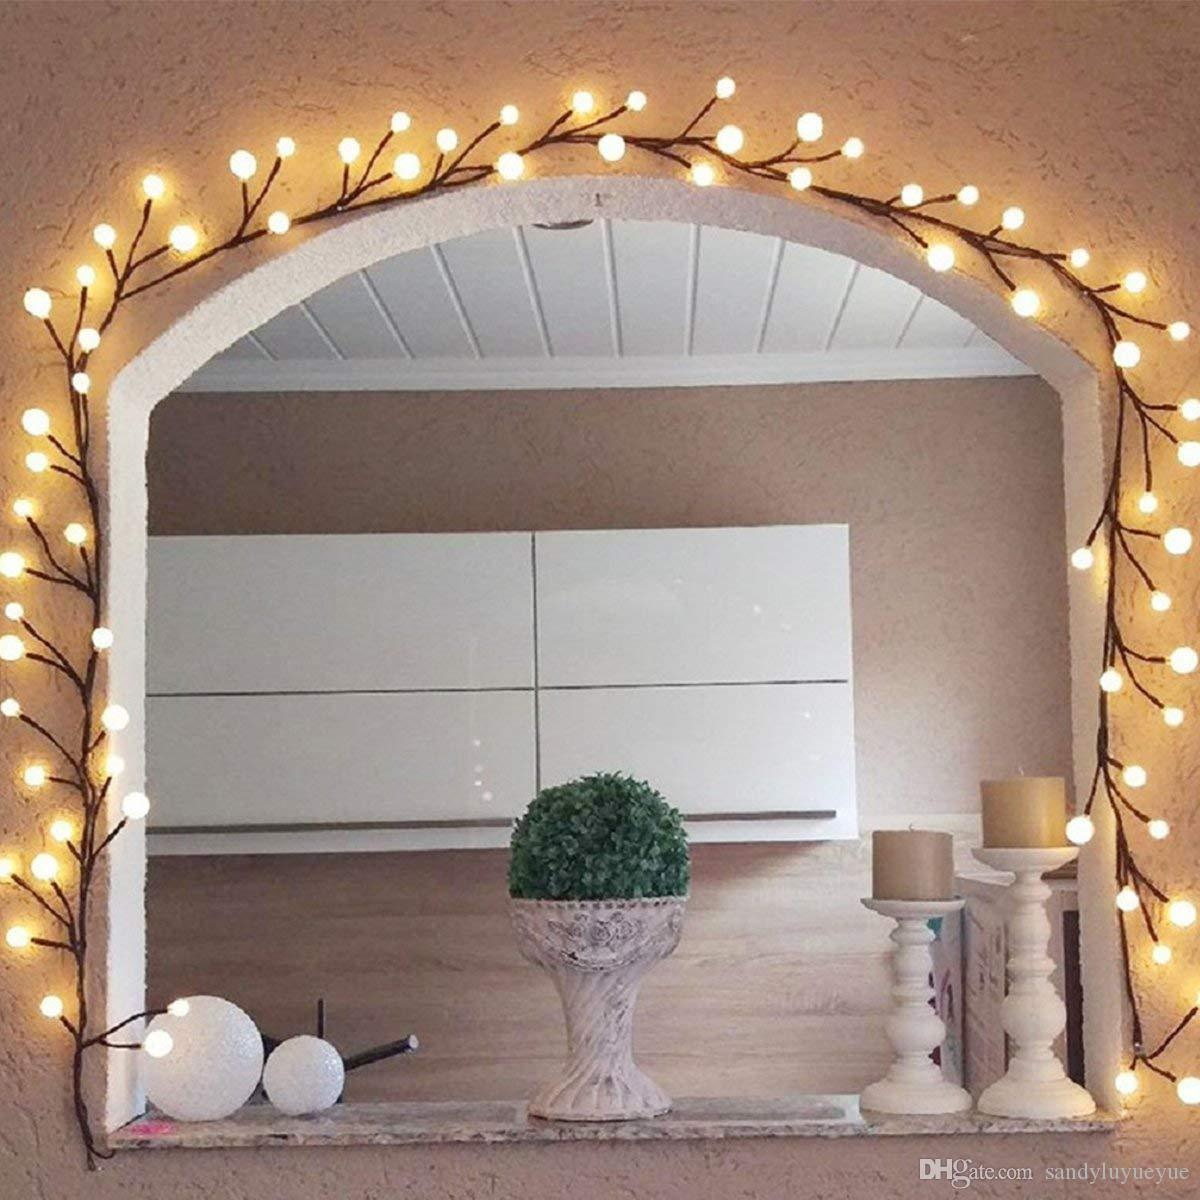 2019 8ft branch fairy string lights 72 led hanging - How to hang up string lights ...